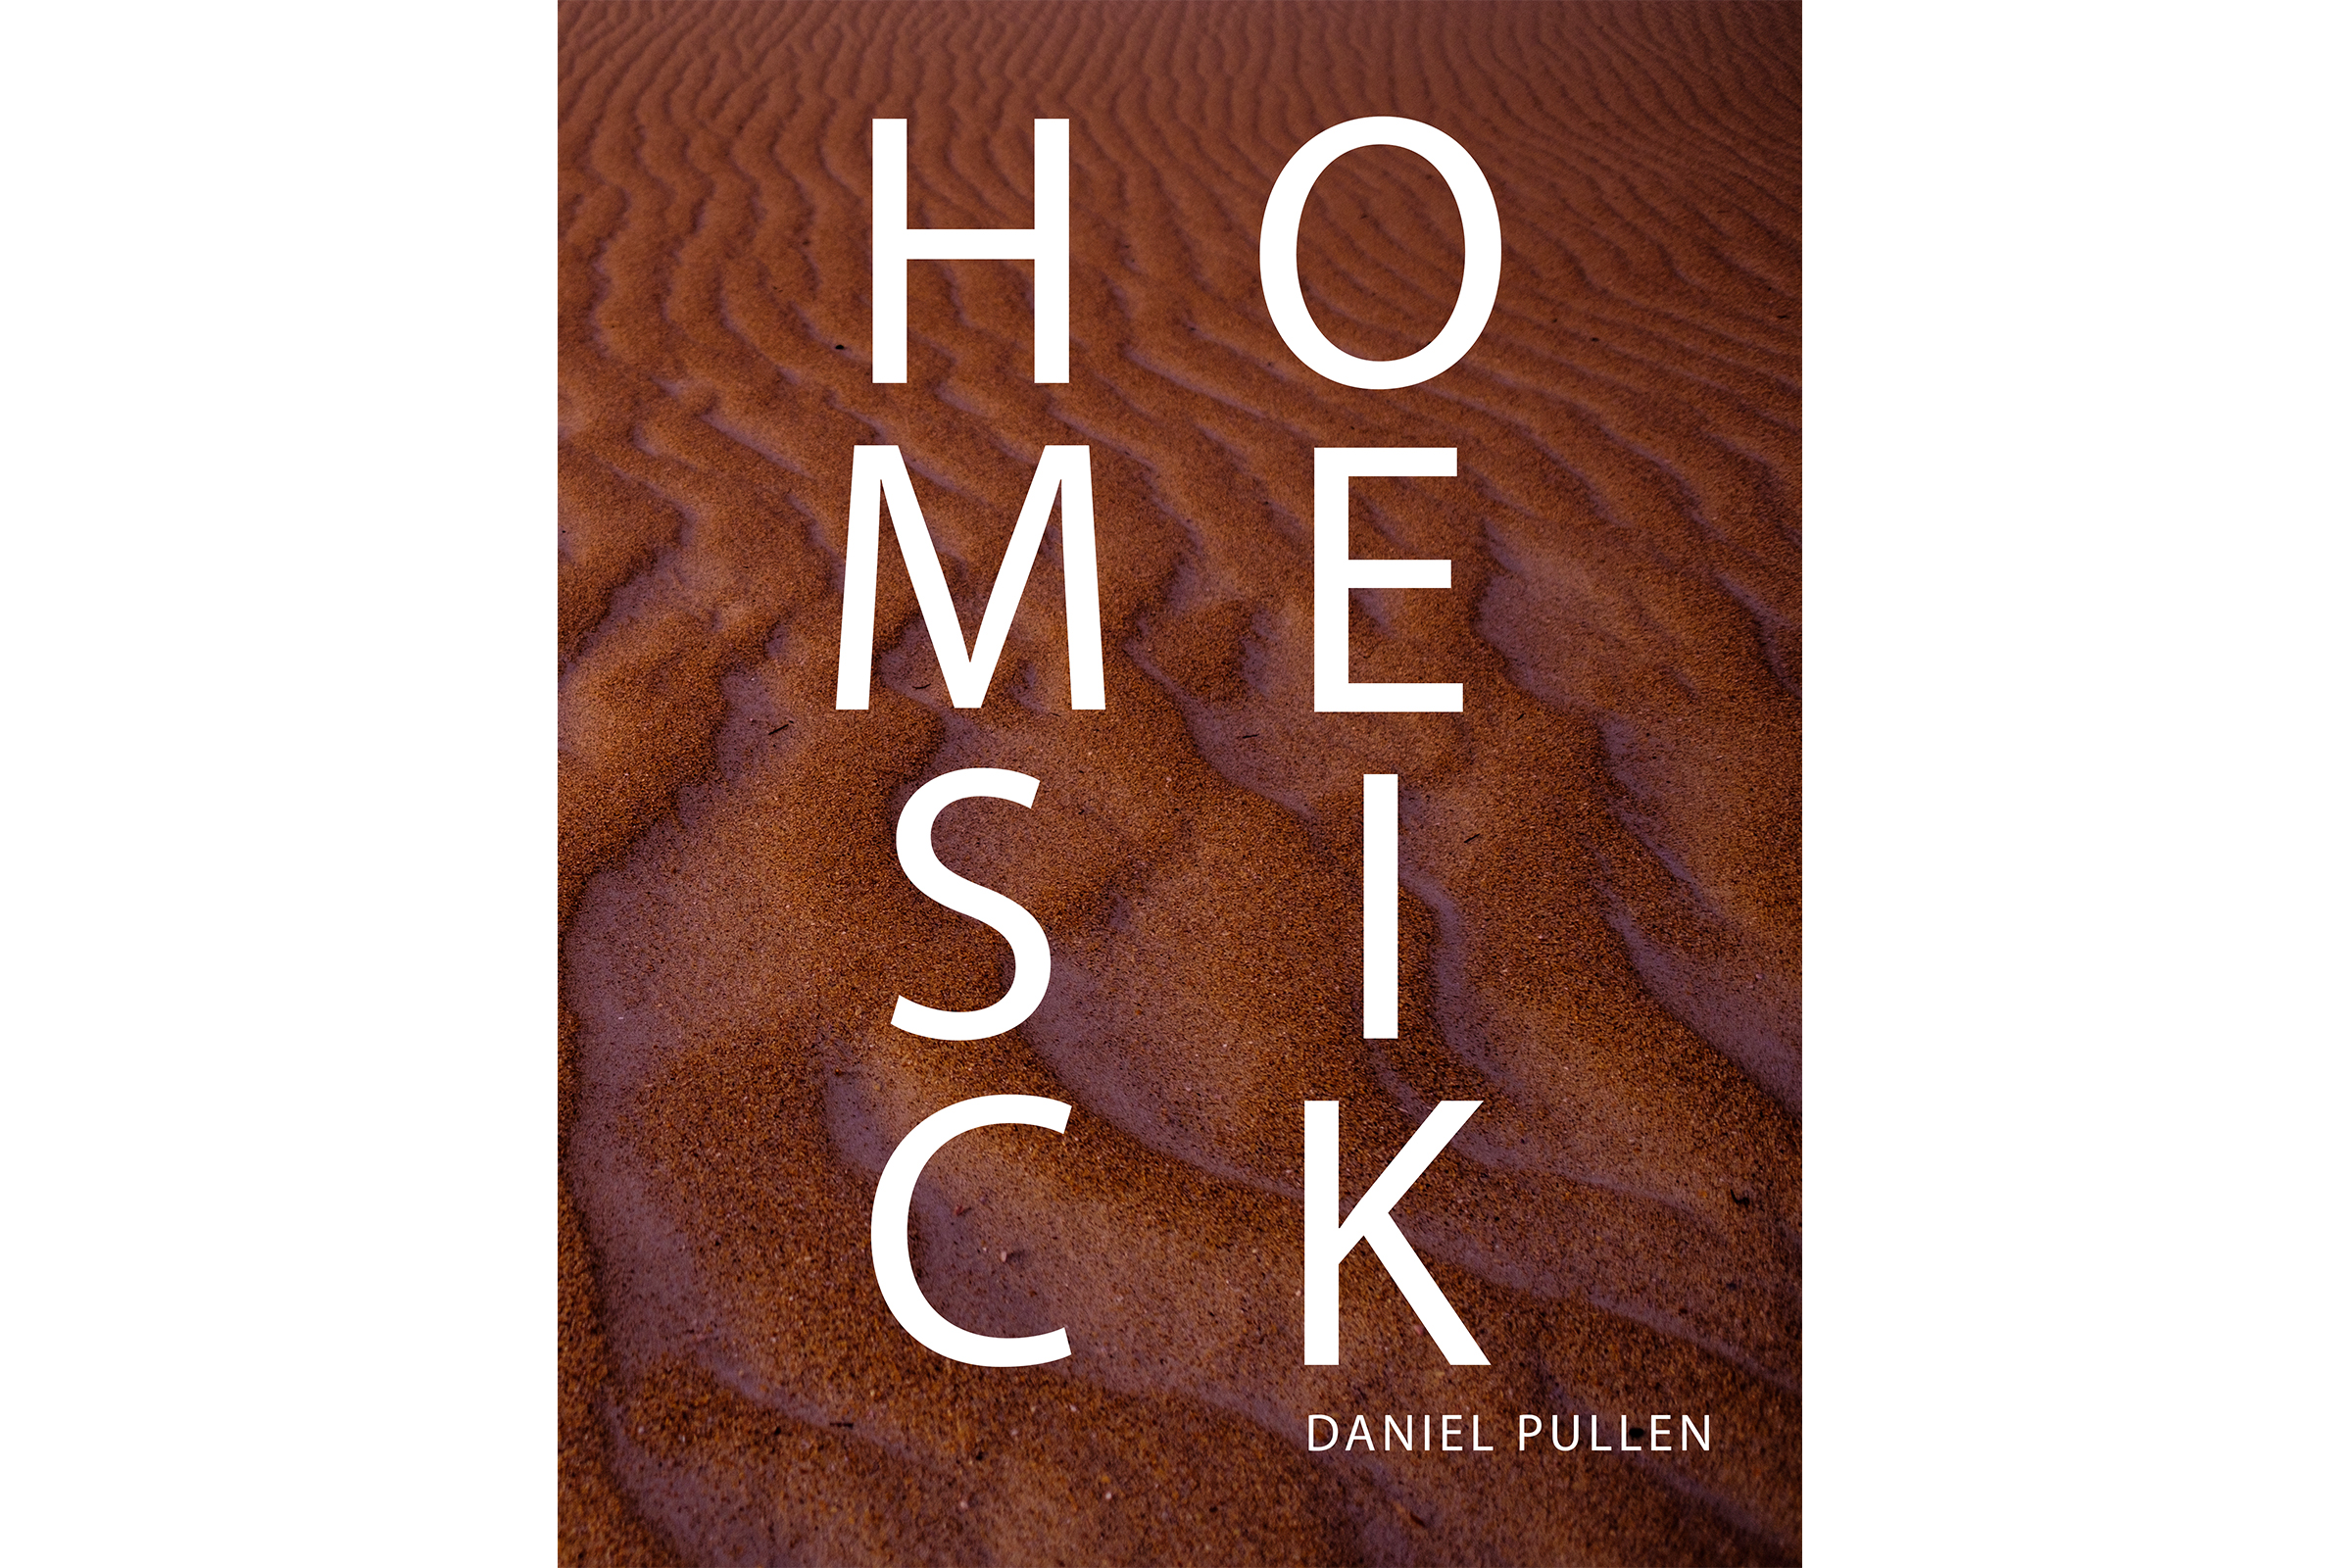 Books + Gifts - Make sure to check out Daniel's debut zine: Homesick, released in 2018.